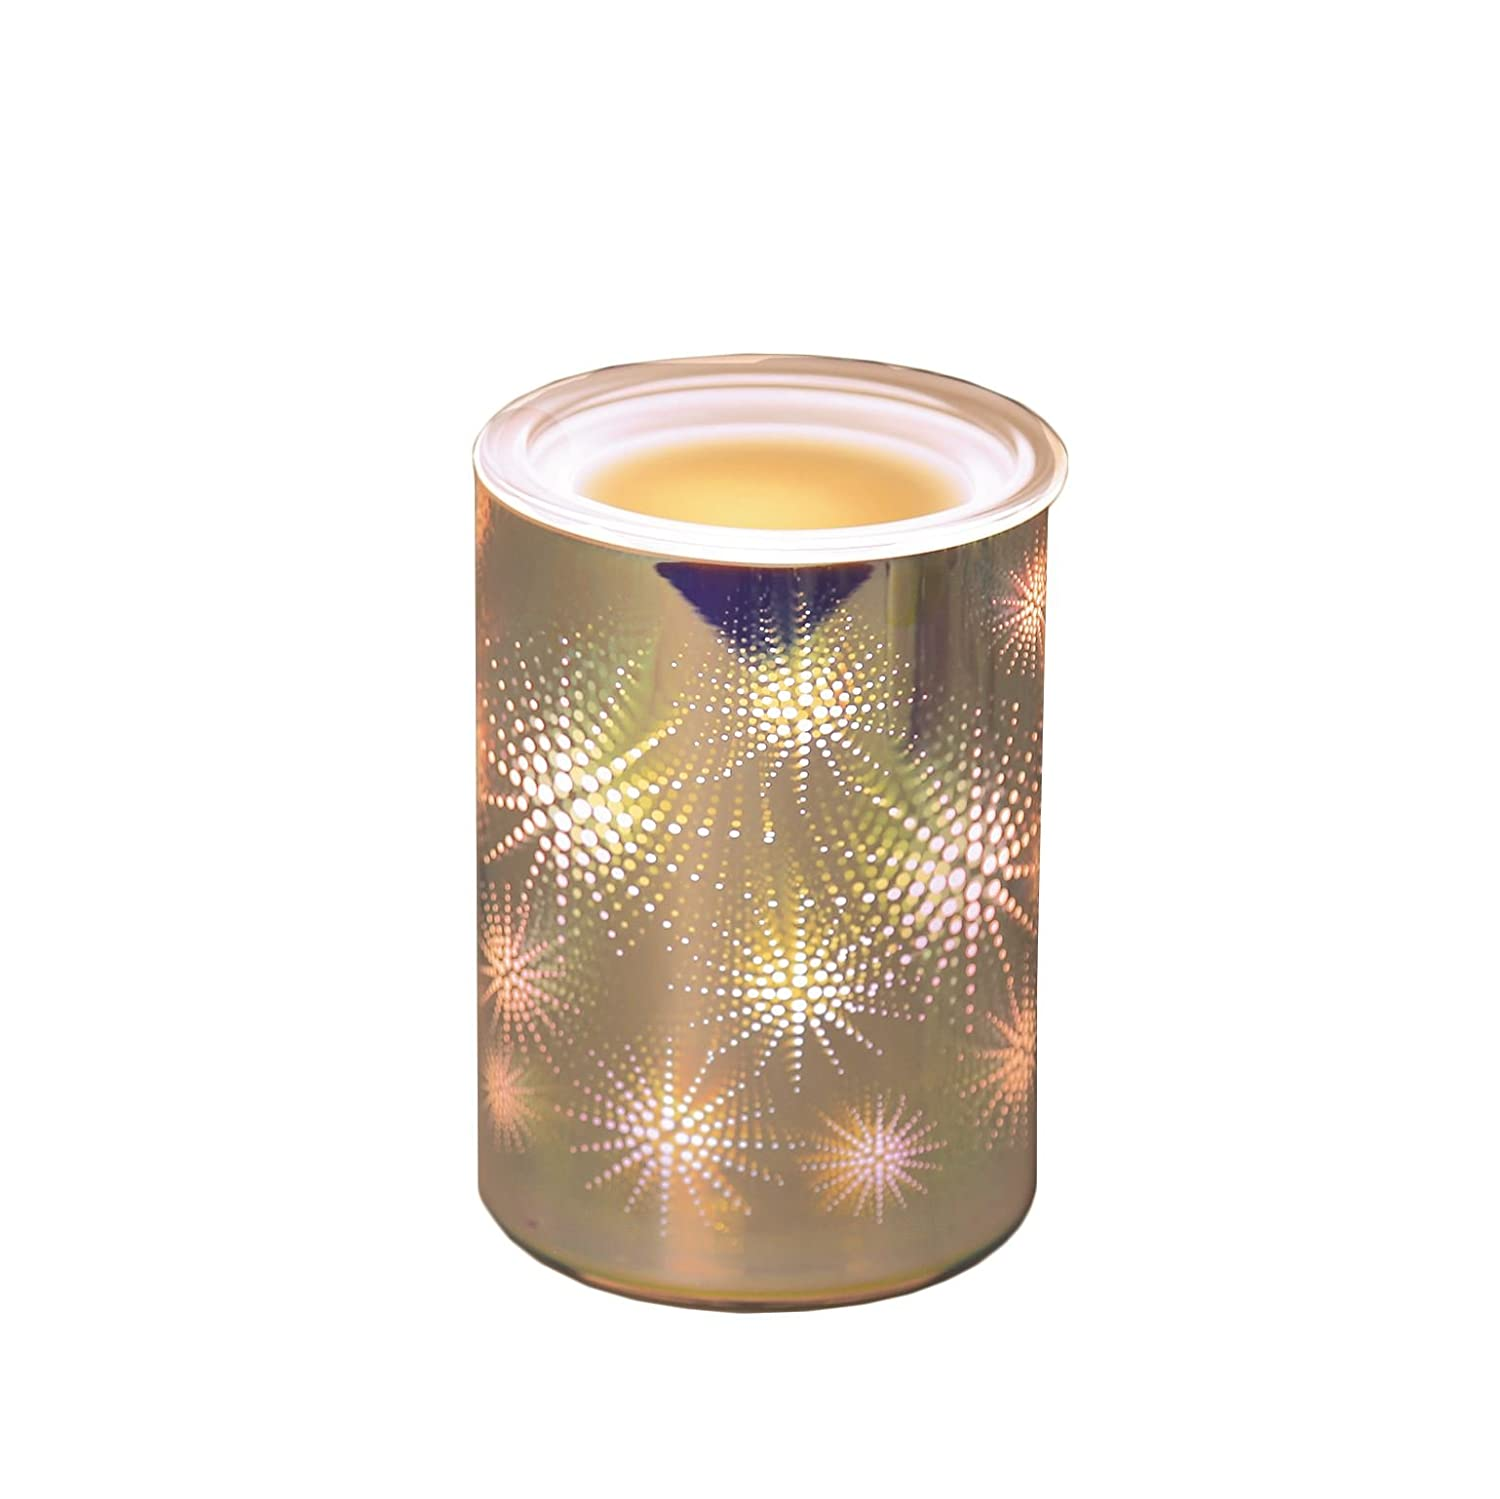 Aroma Accessories 3D Star Burst Design Mirror Glass Straight Electric Melt Burner AR1122 Aromatize